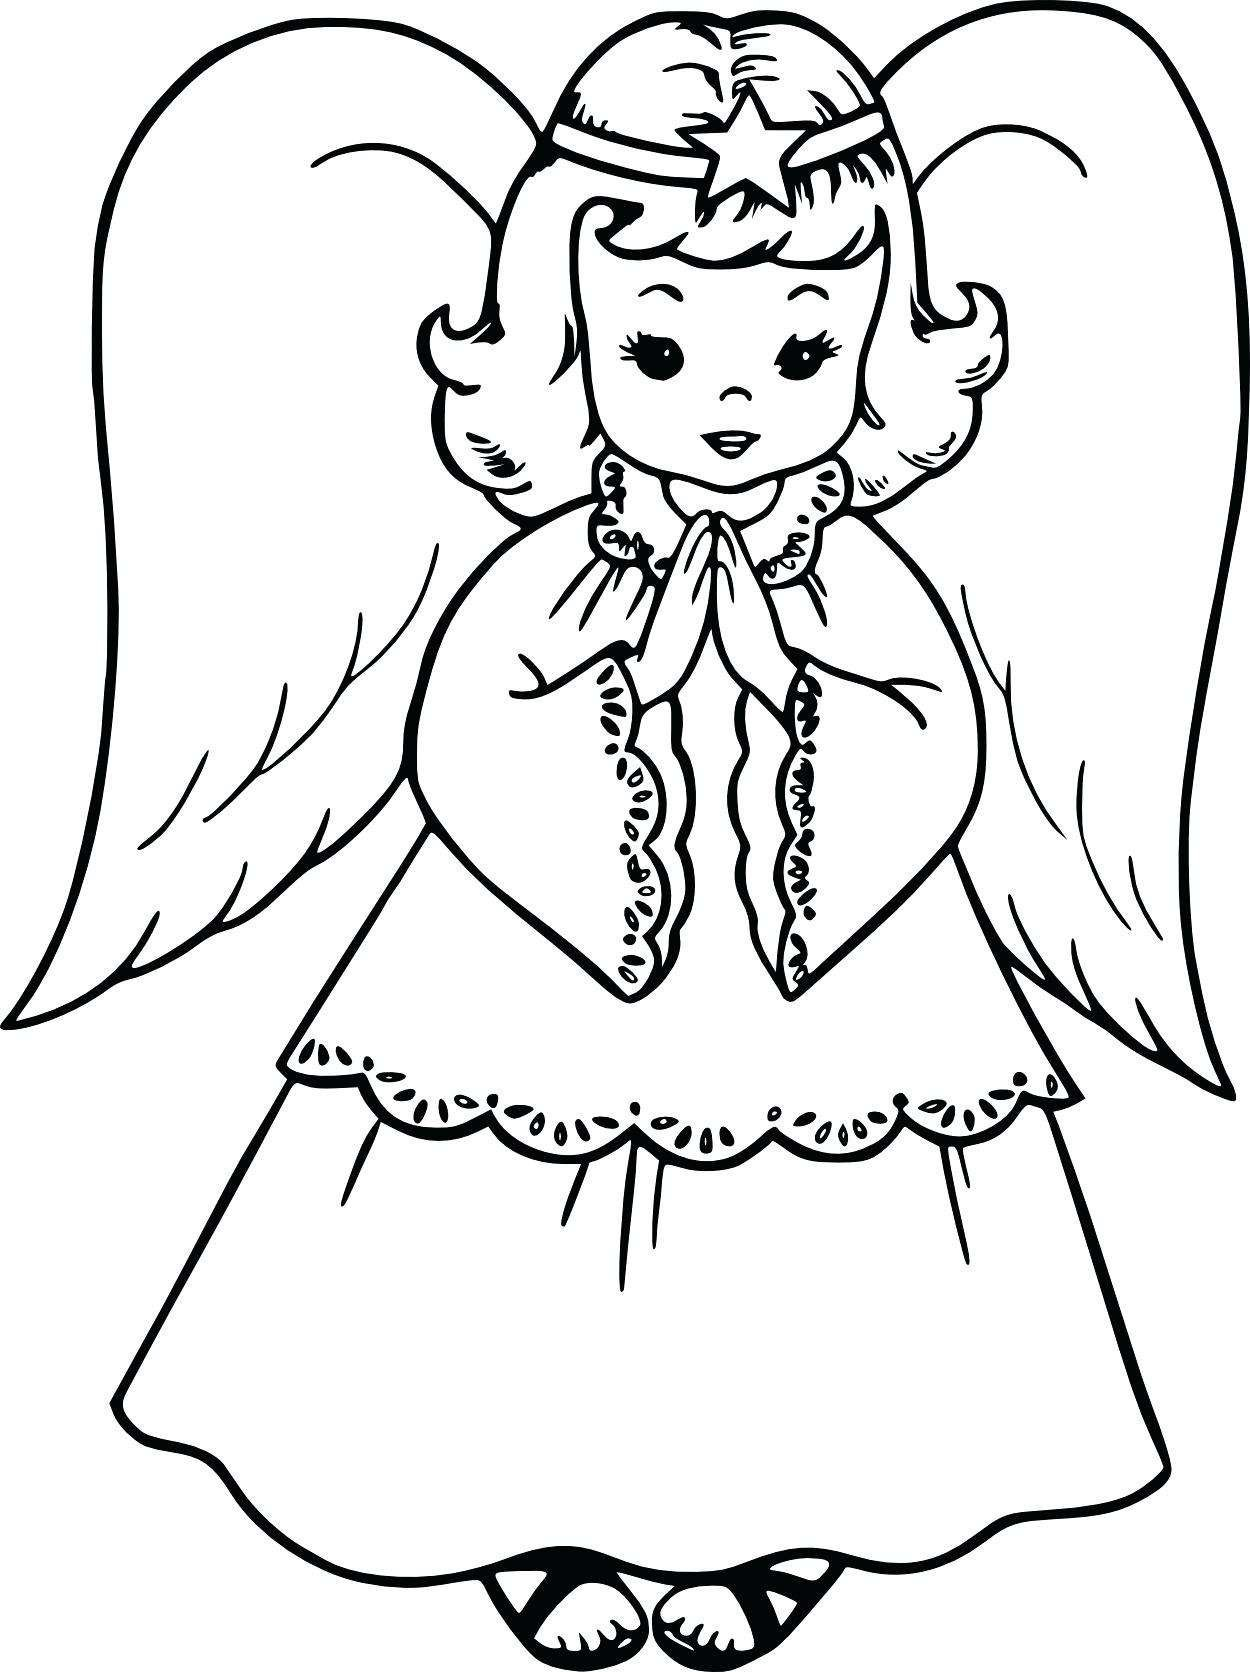 Christmas Kaleidoscope Coloring Pages With Best Of CrosbyAndCosg